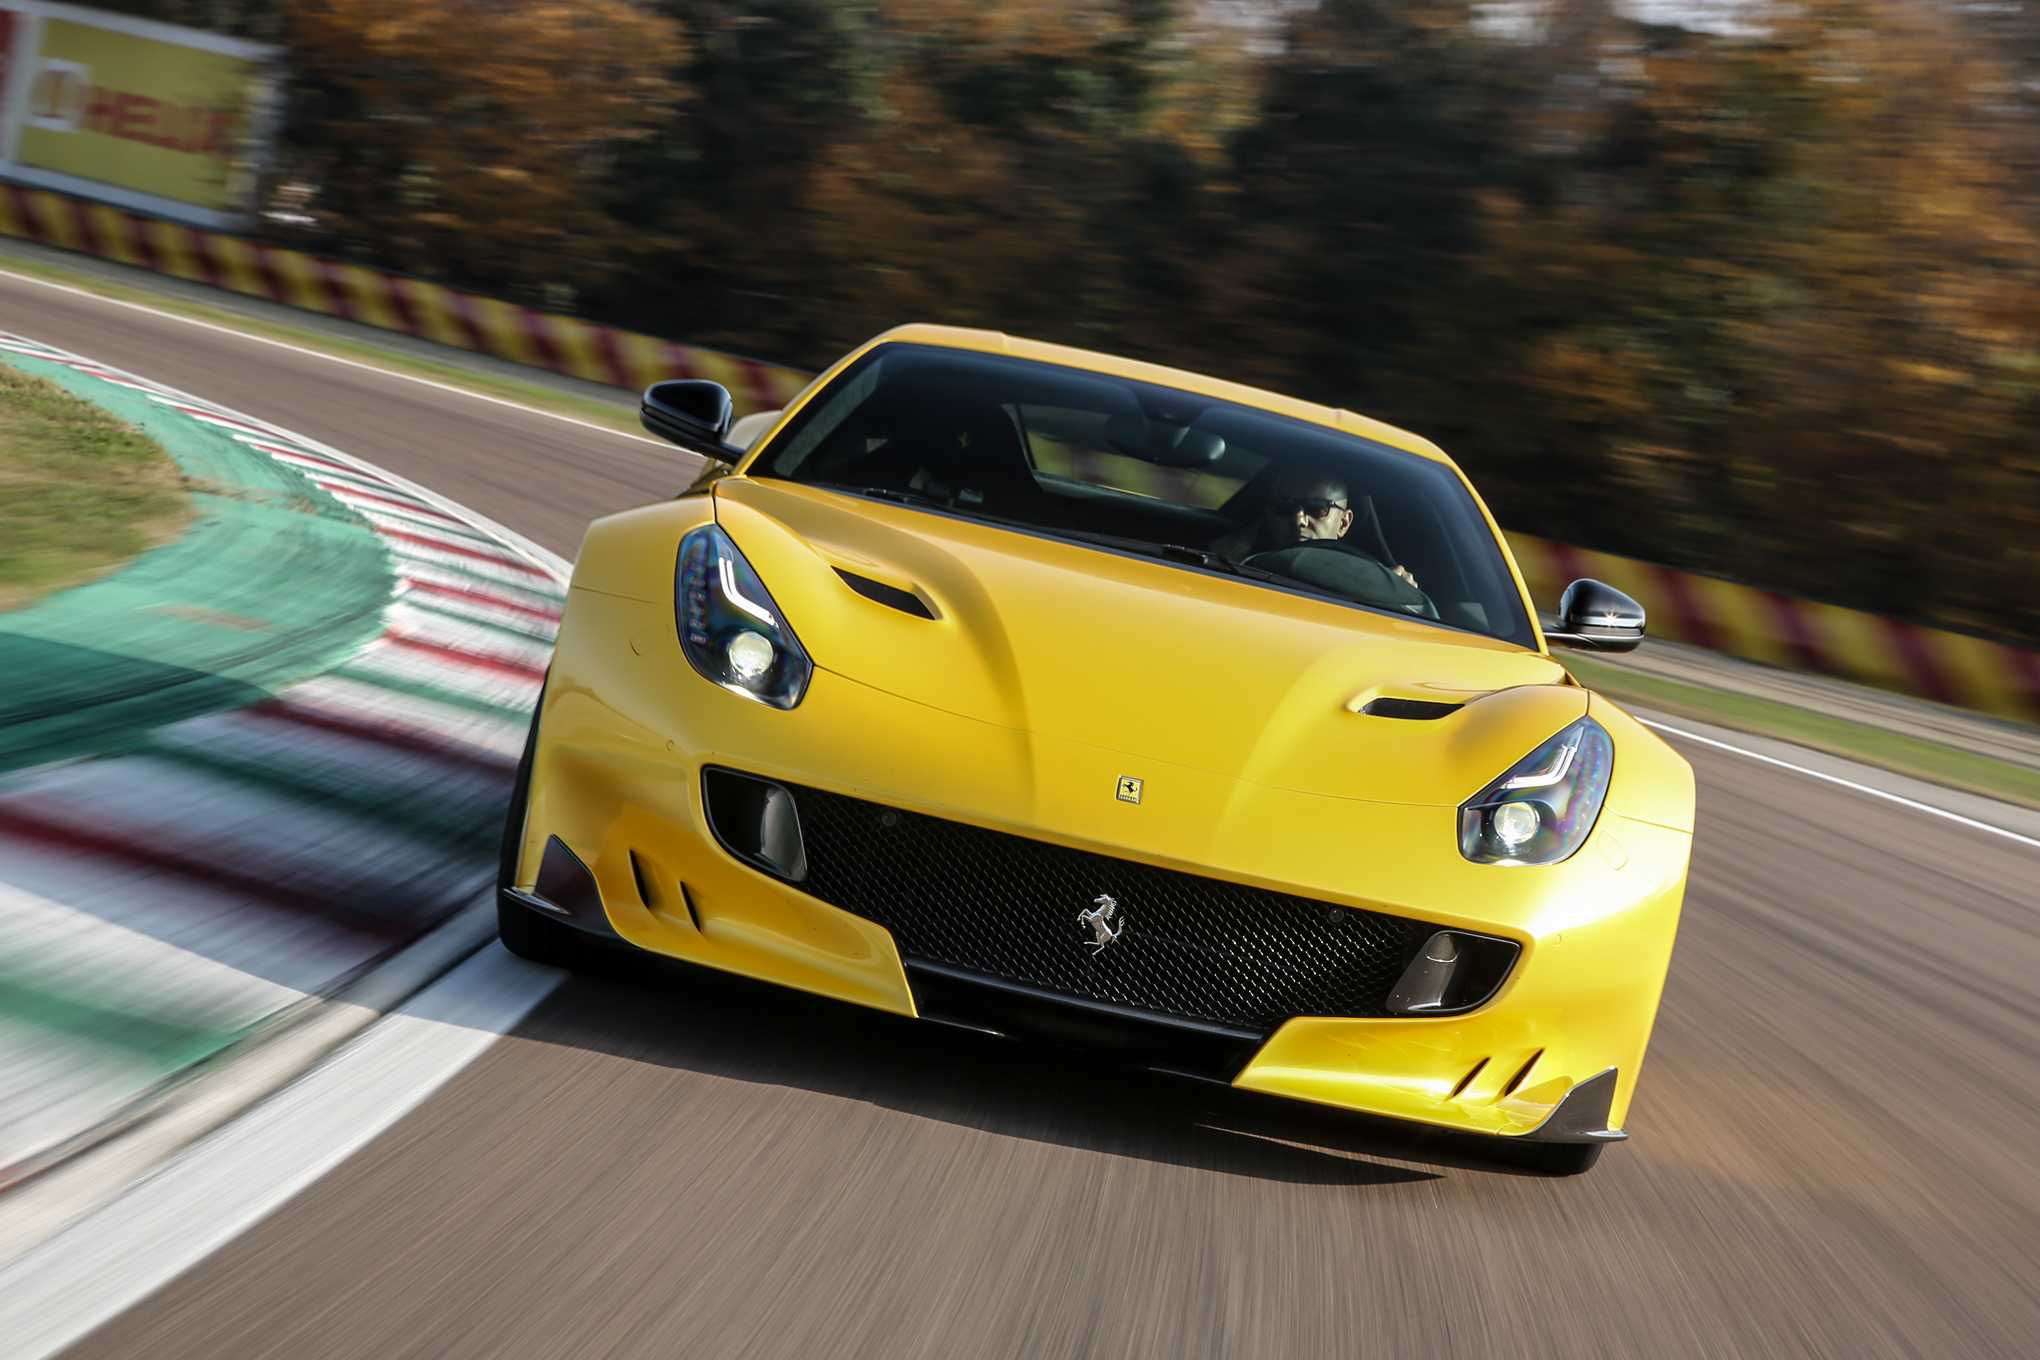 Next Gen Ferrari F12 will not Sport Hybrid or Turbo Engines, Goes with V12